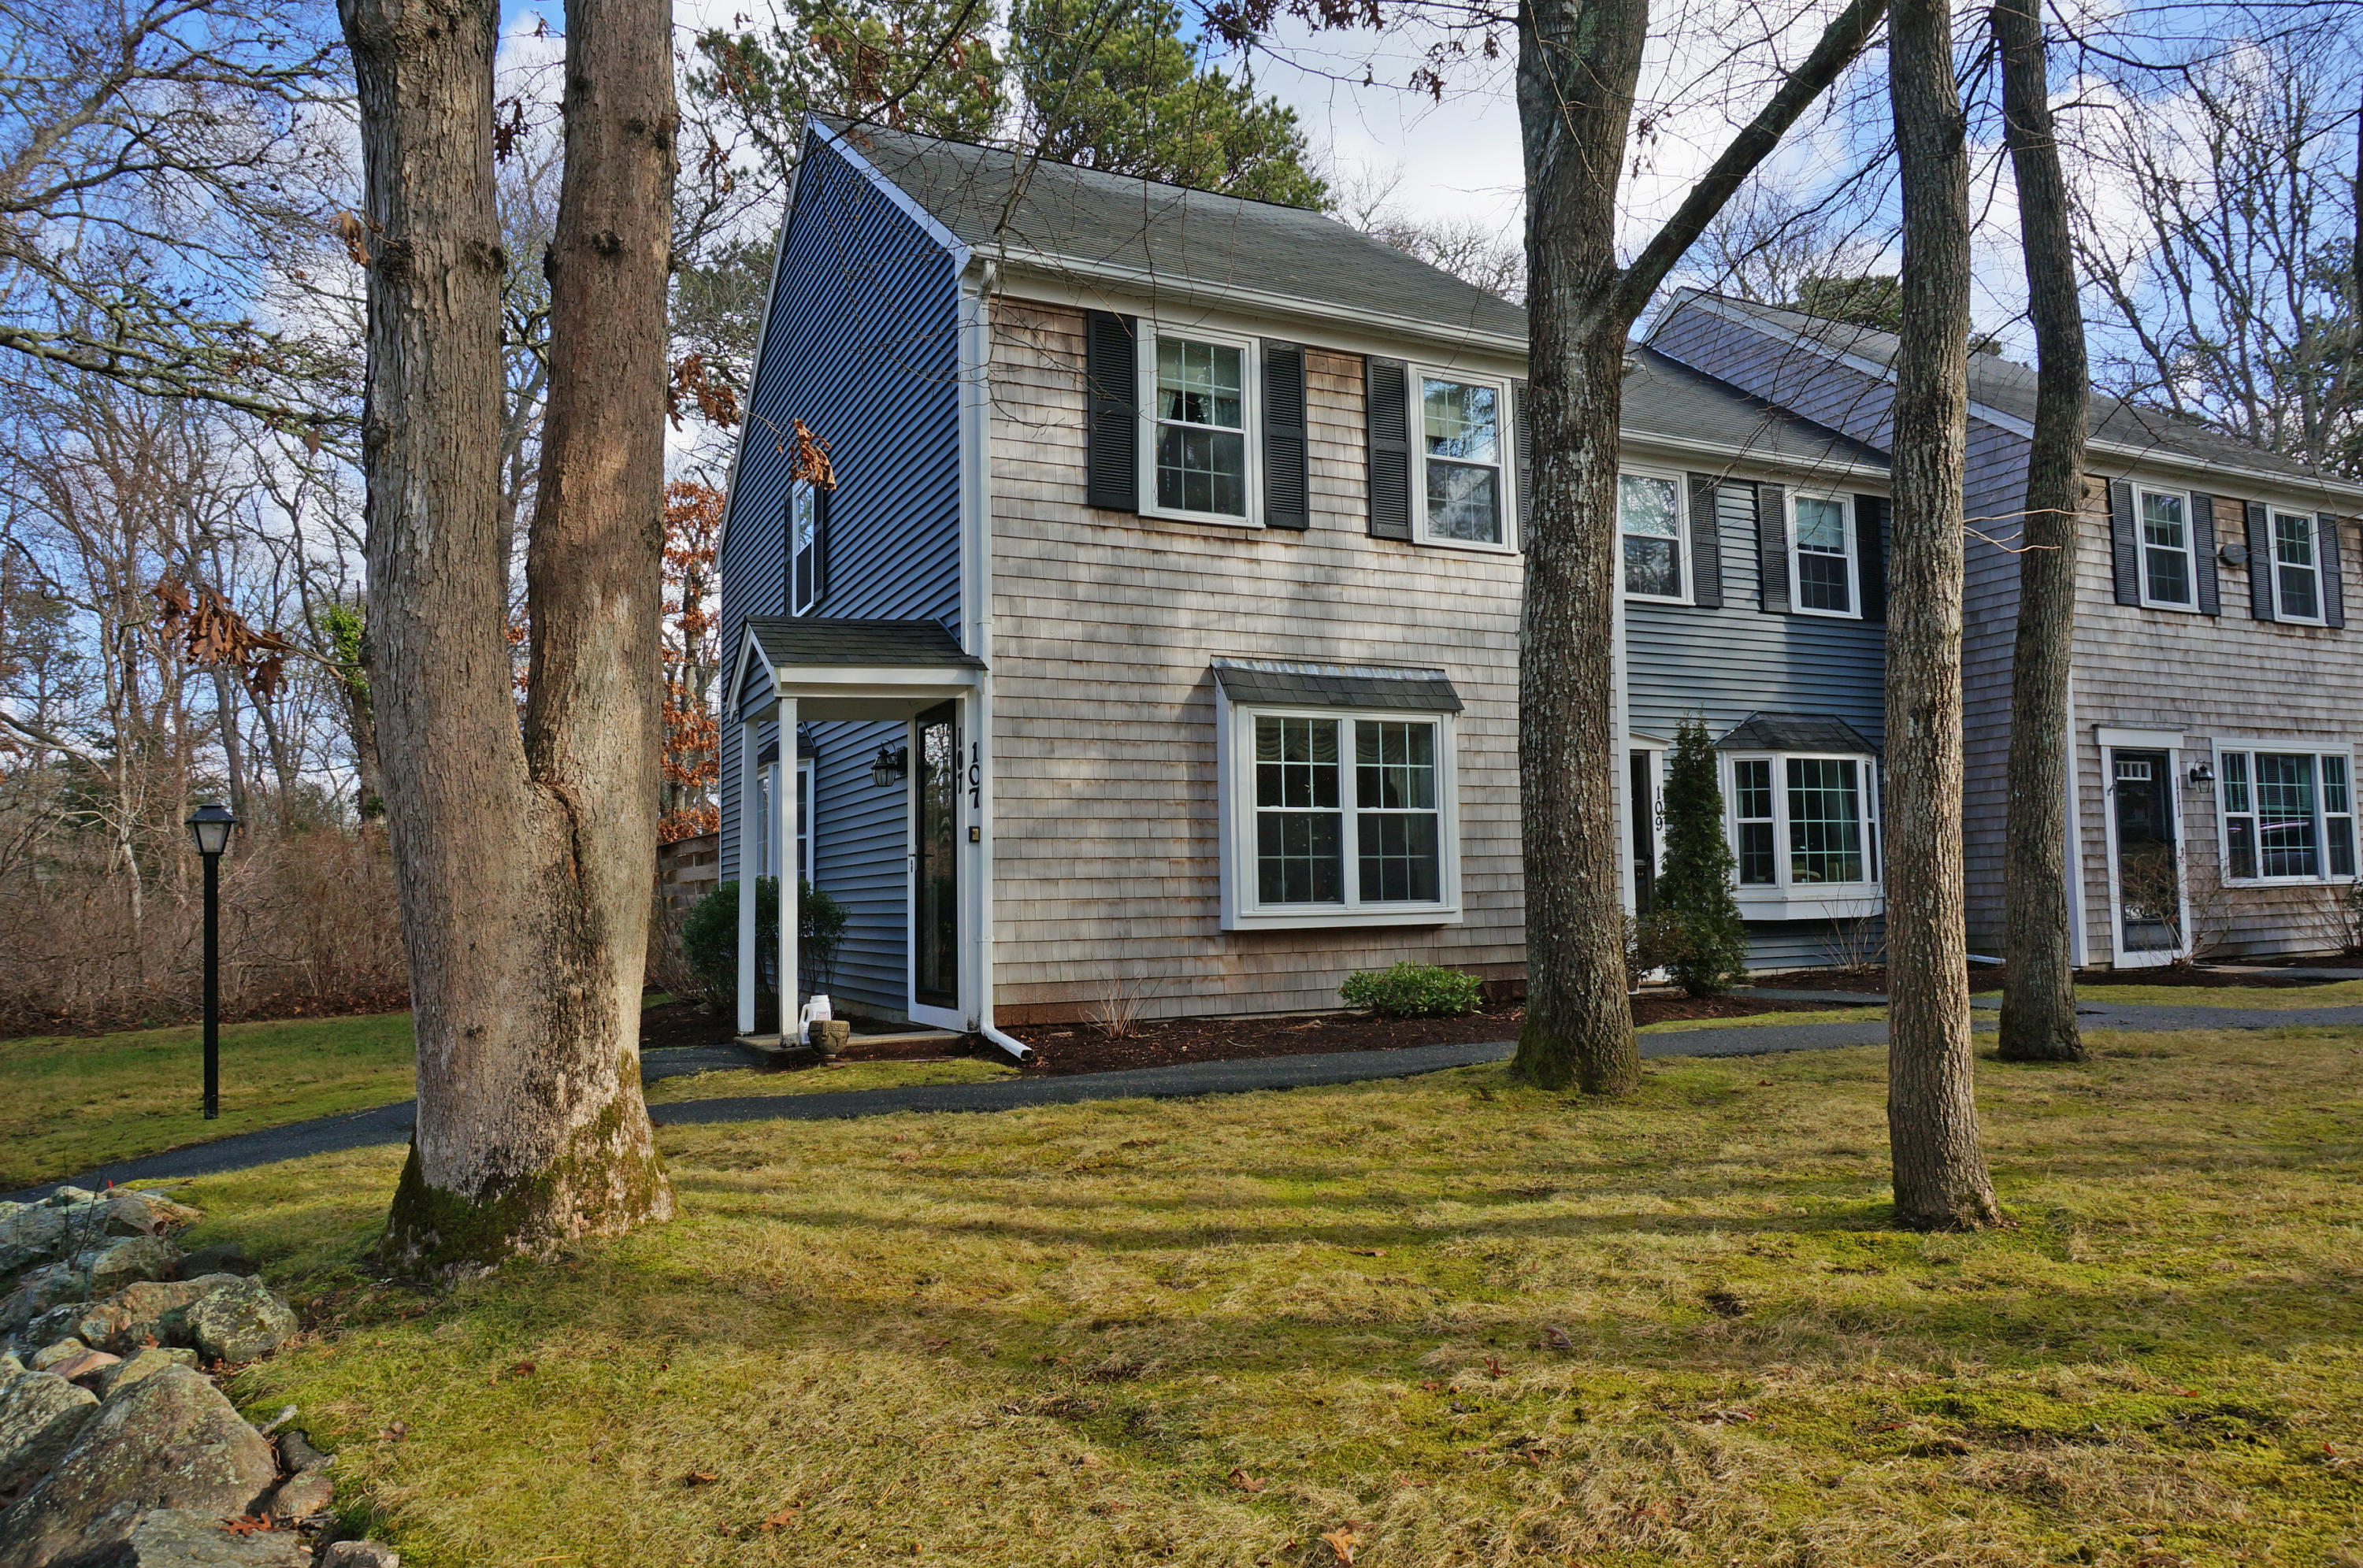 107 Woodview Drive, Brewster MA, 02631 sales details